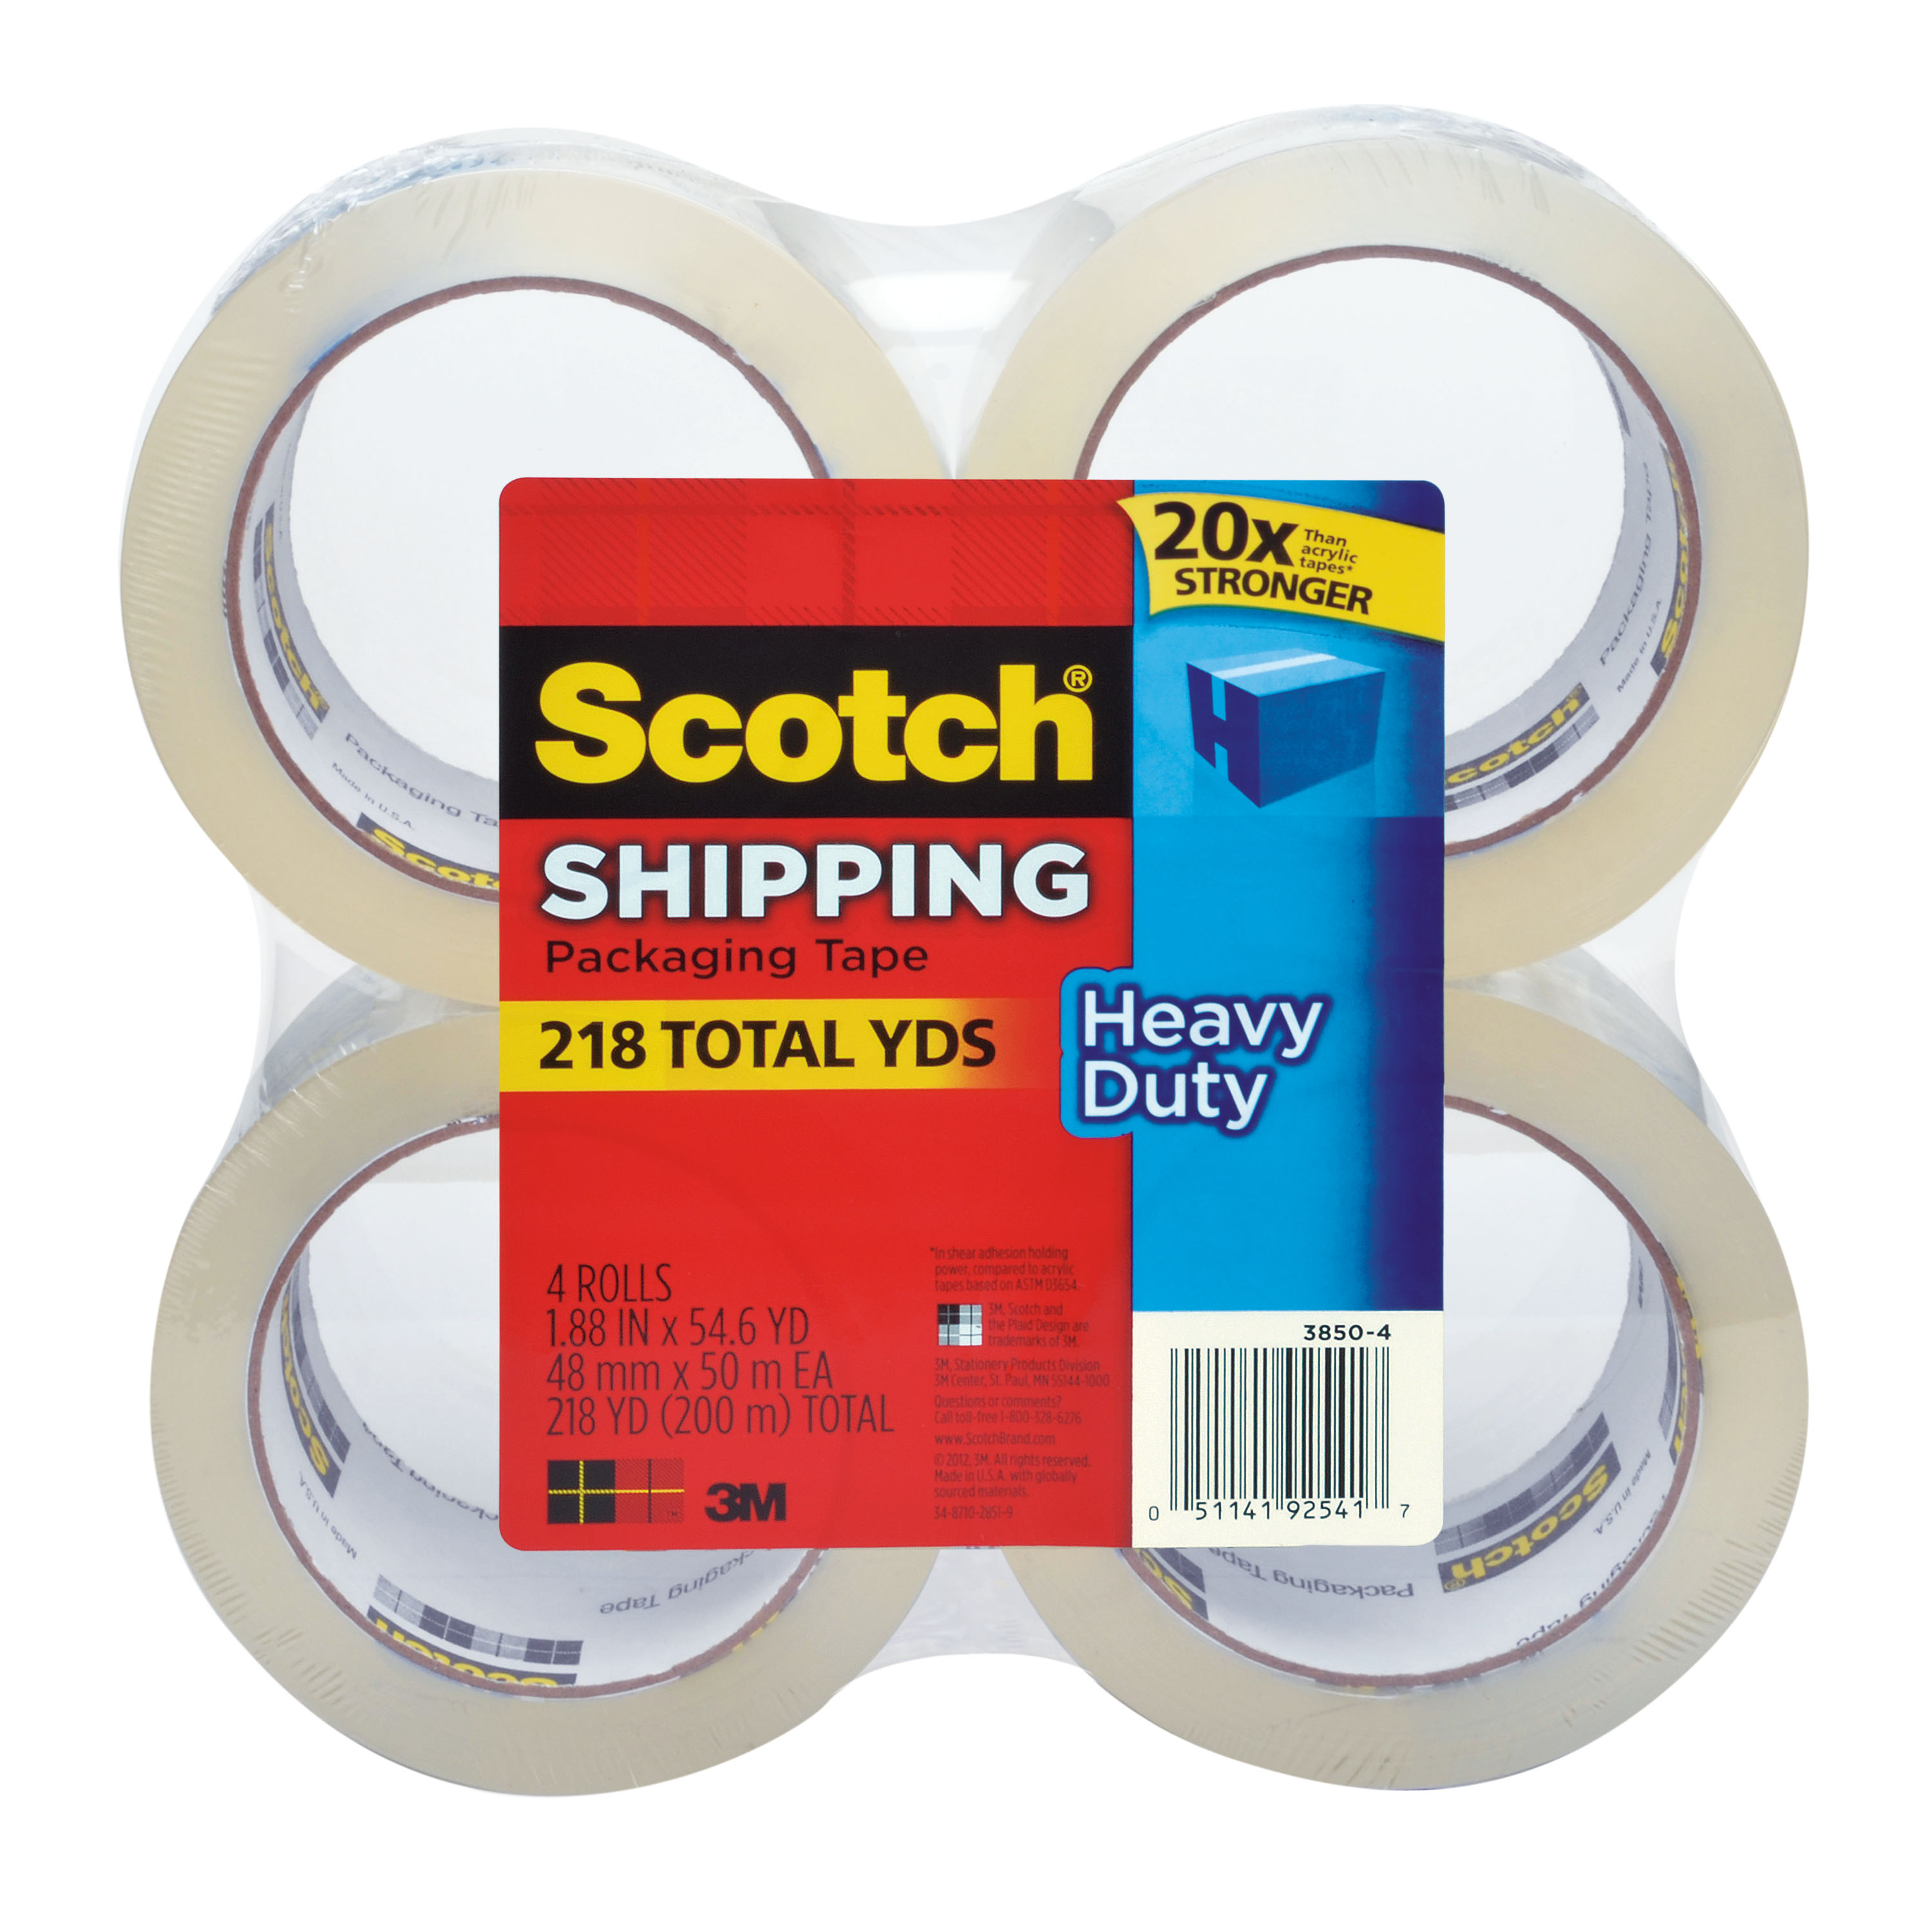 Scotch Heavy Duty Shipping Packaging Tape, 1.88 in. x 54.6 yd., Clear, 4 Rolls/Pack